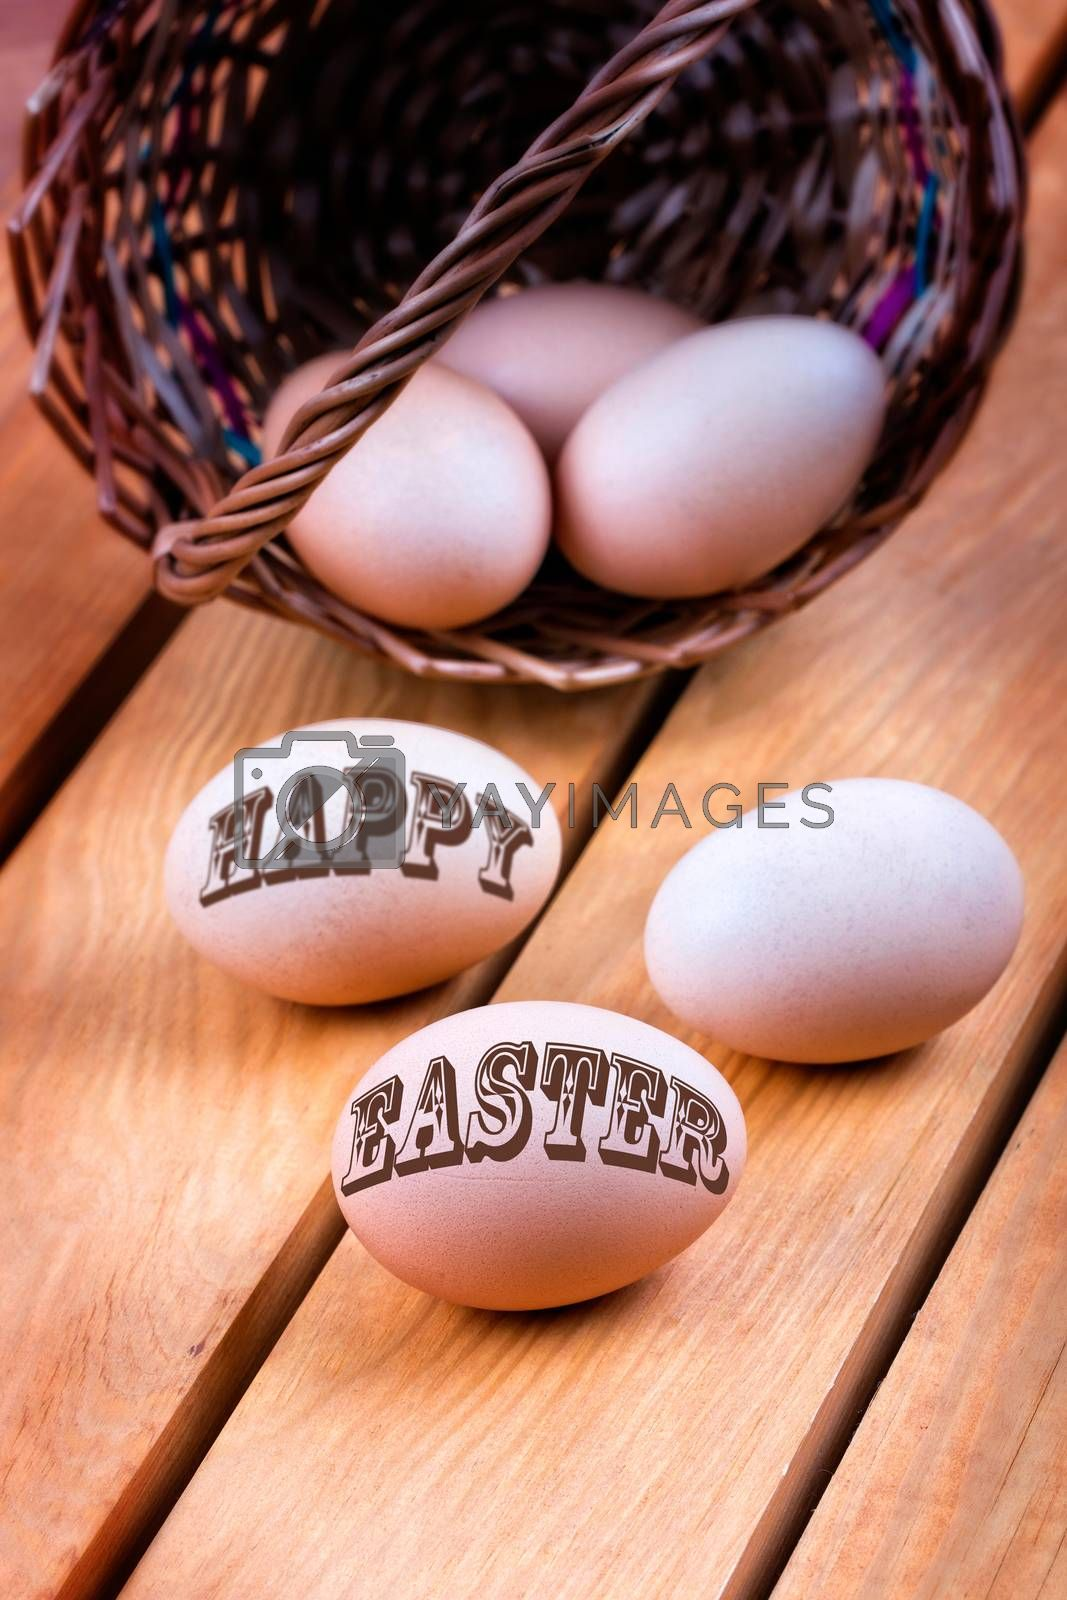 Happy easter - eggs in a basket on a wooden background